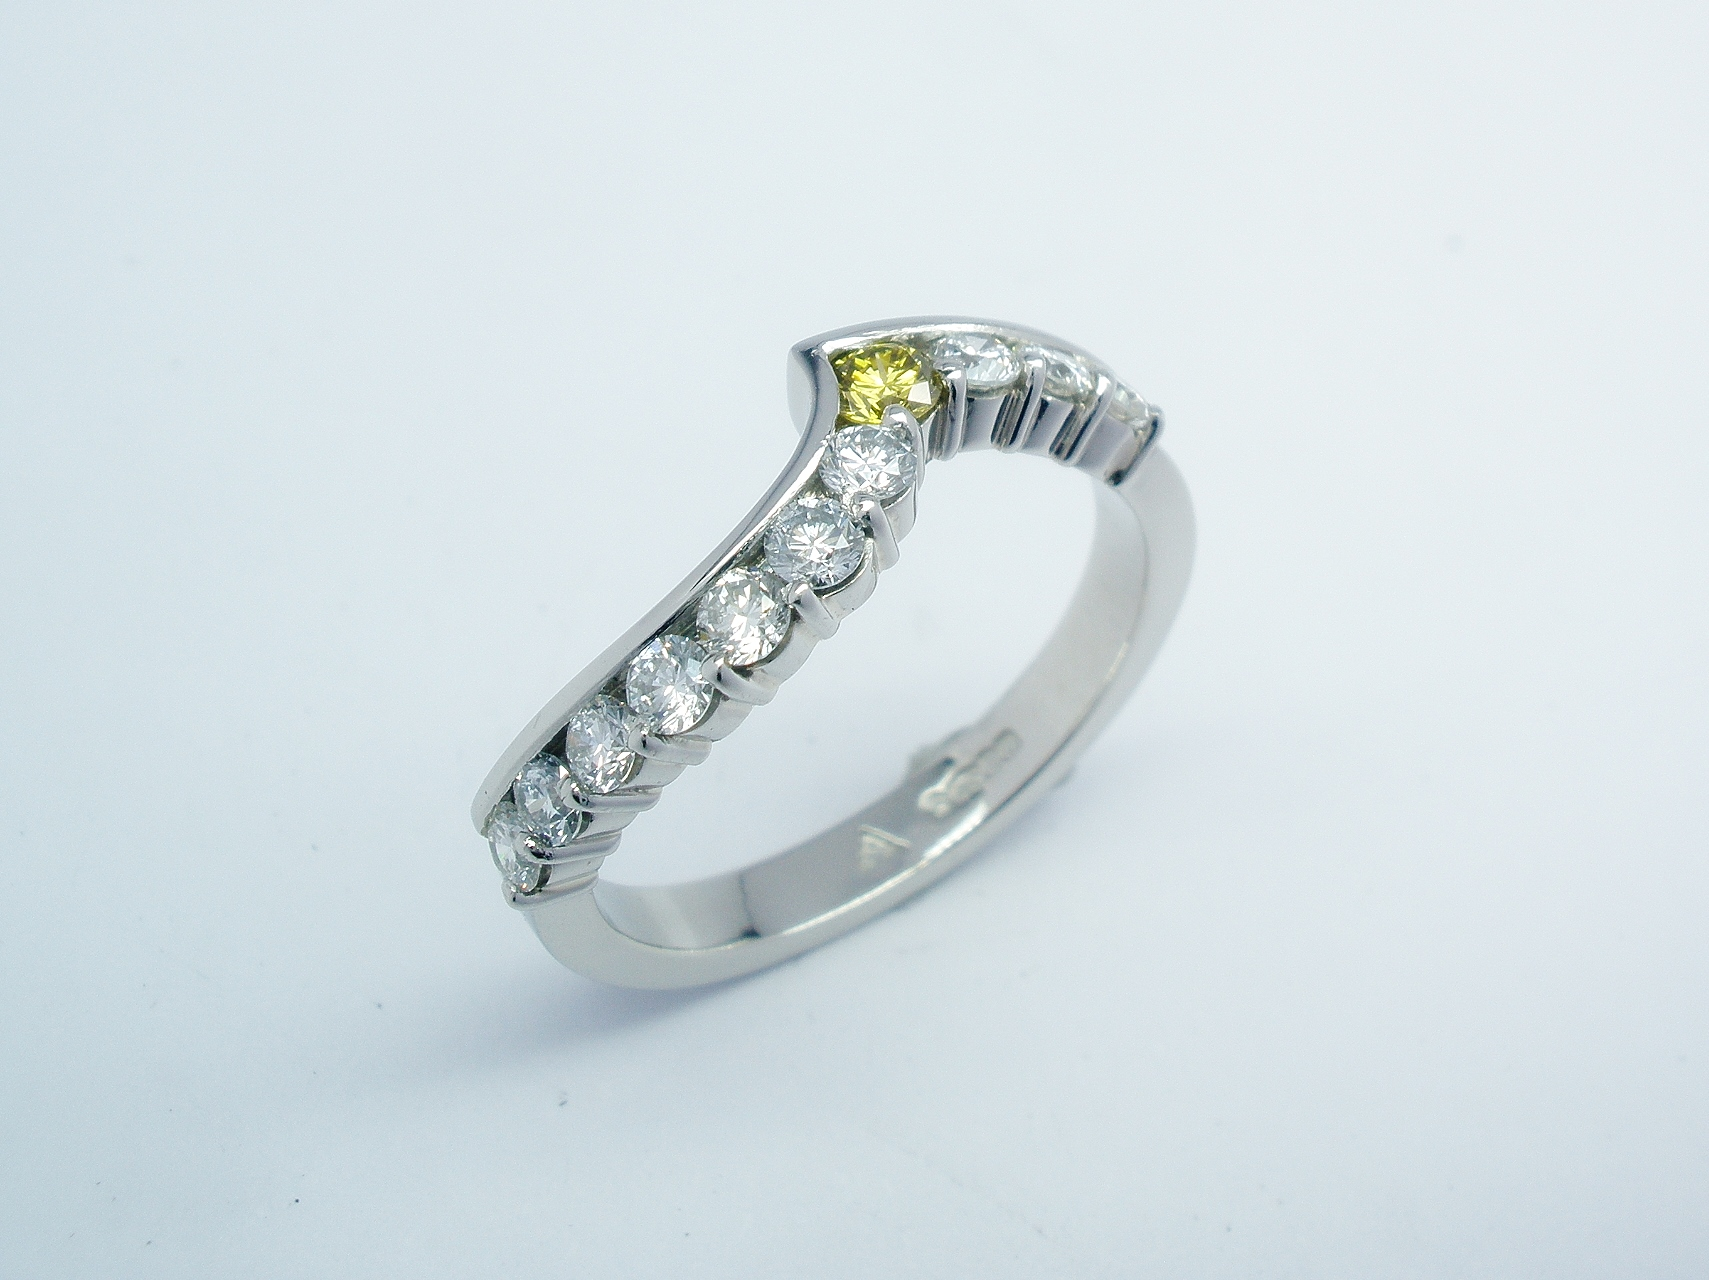 A platinum 11 stone canary yellow & white round brilliant cut diamond part channel set ring shaped to fit around a single stone diamond cross-over ring.